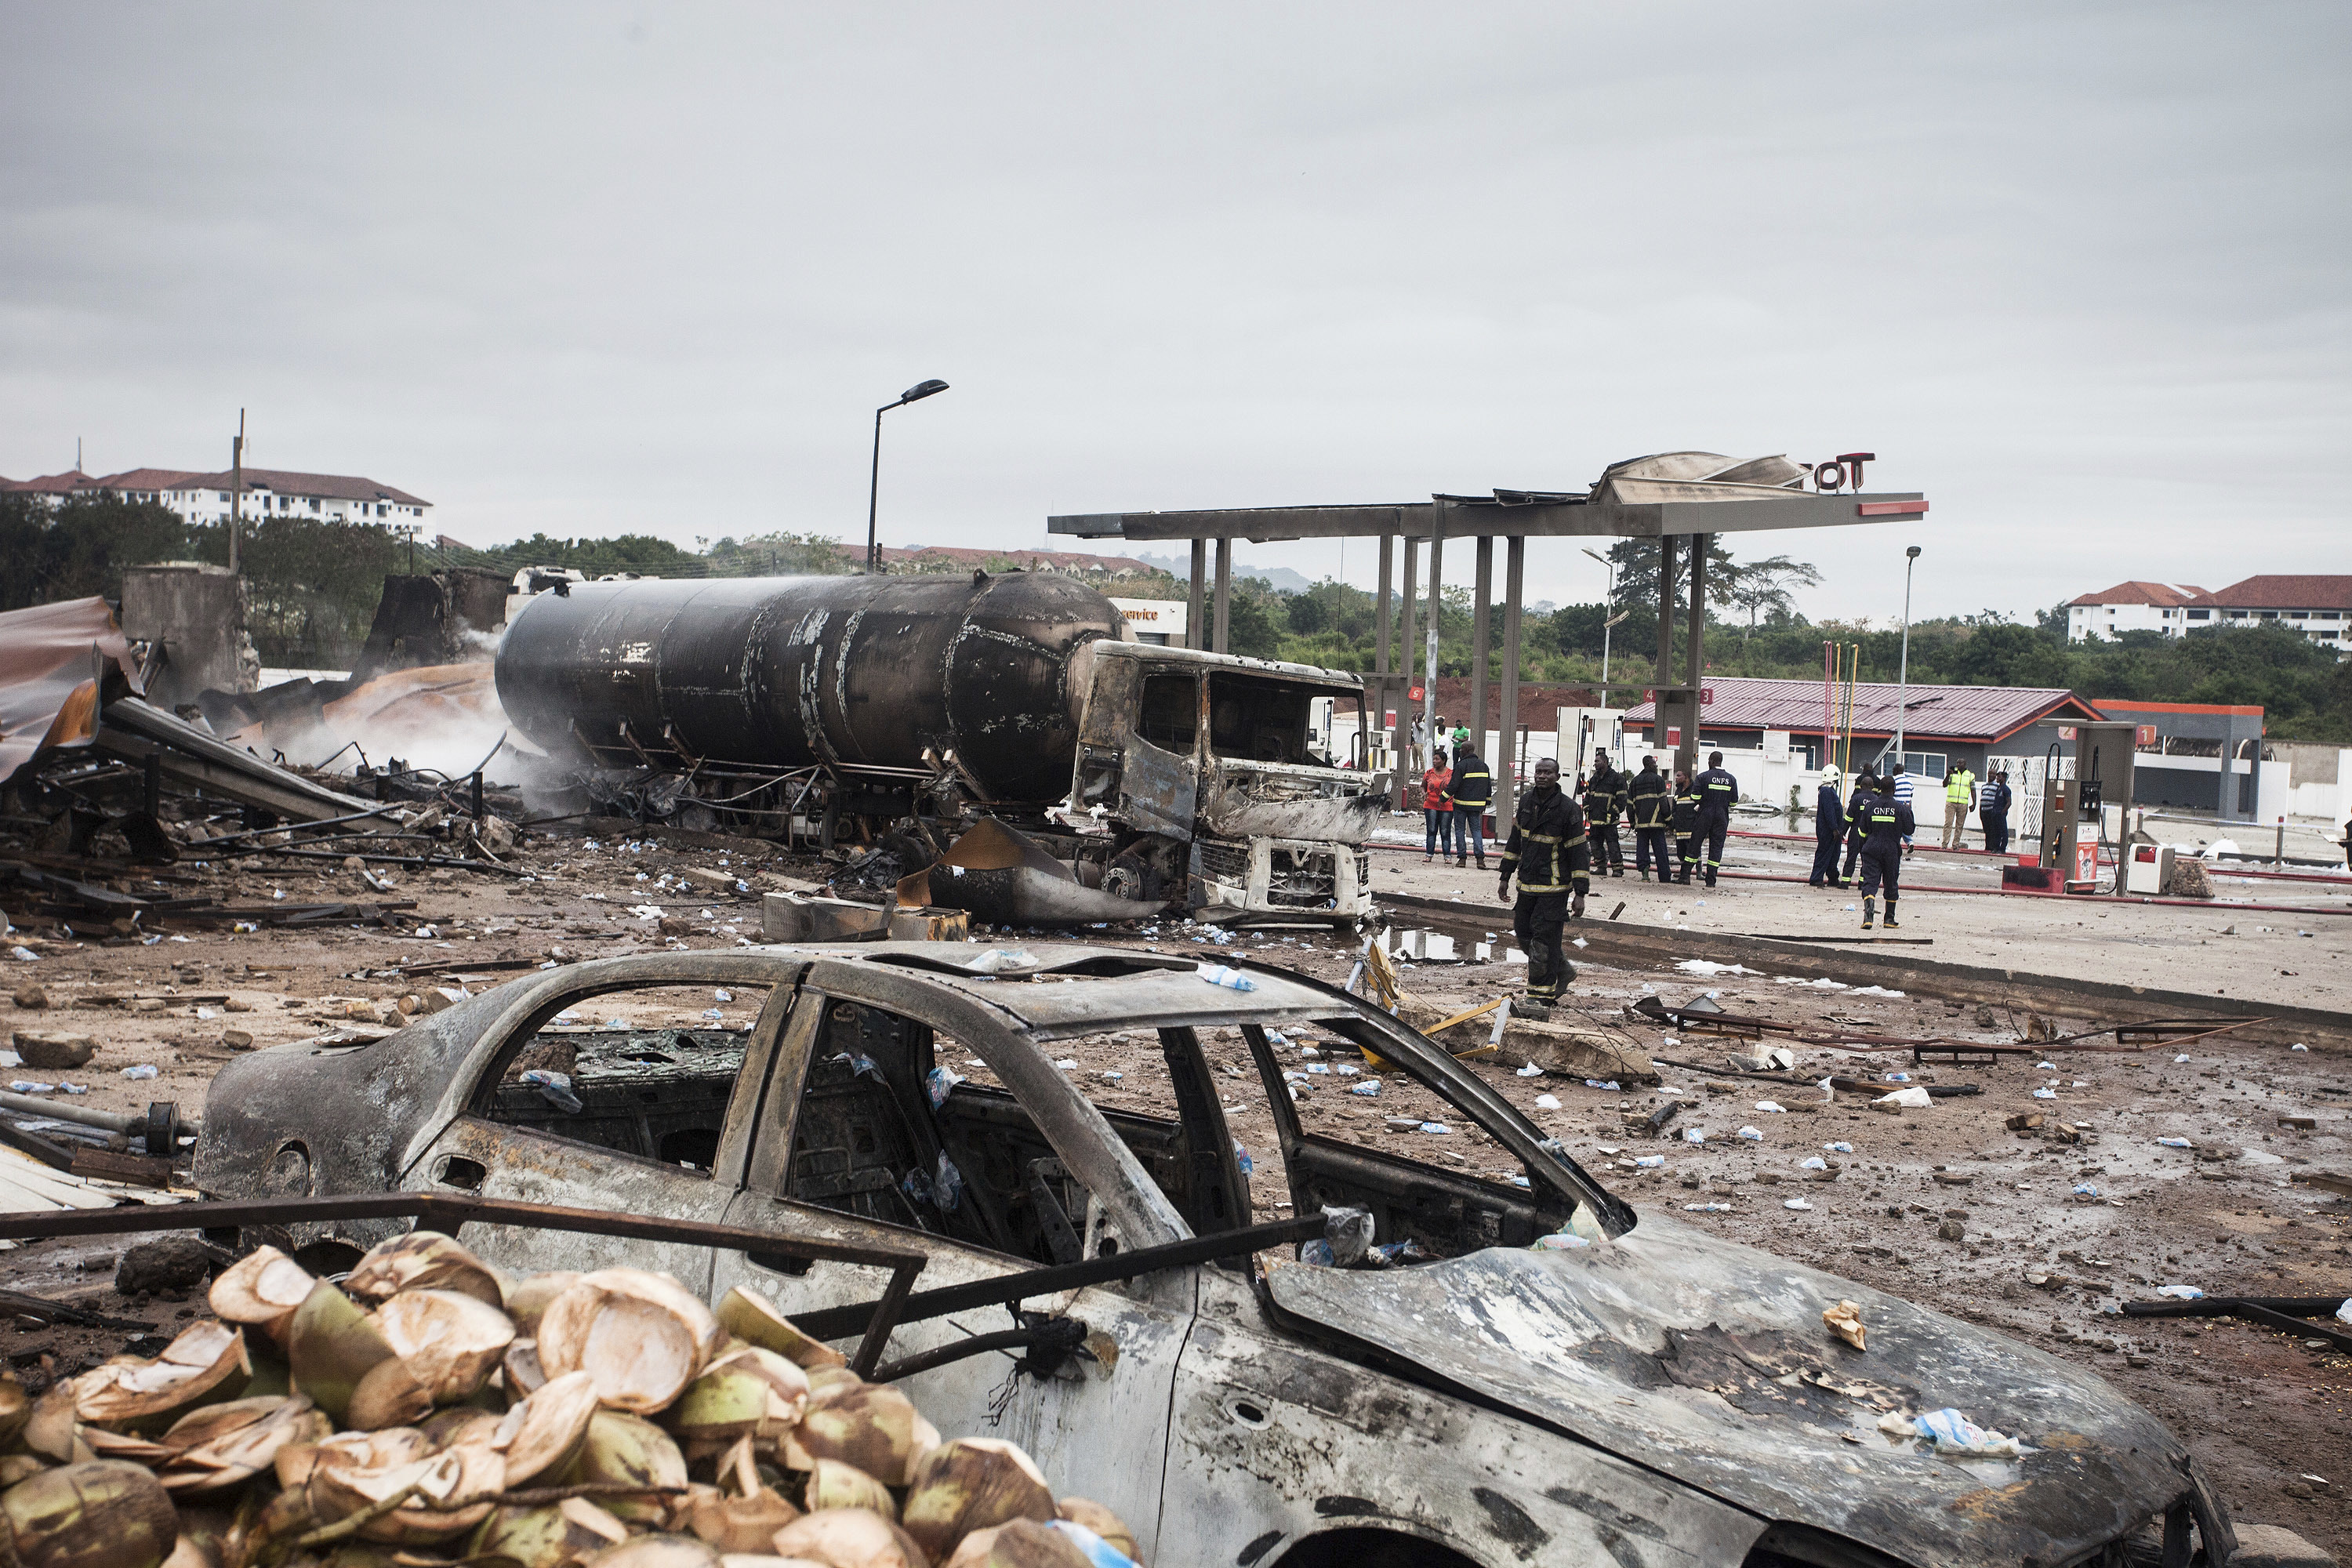 WEB APTOPIX Ghana Explosion Firemen at the site of Saturday's gas tanker explosion in Accra, Ghana.